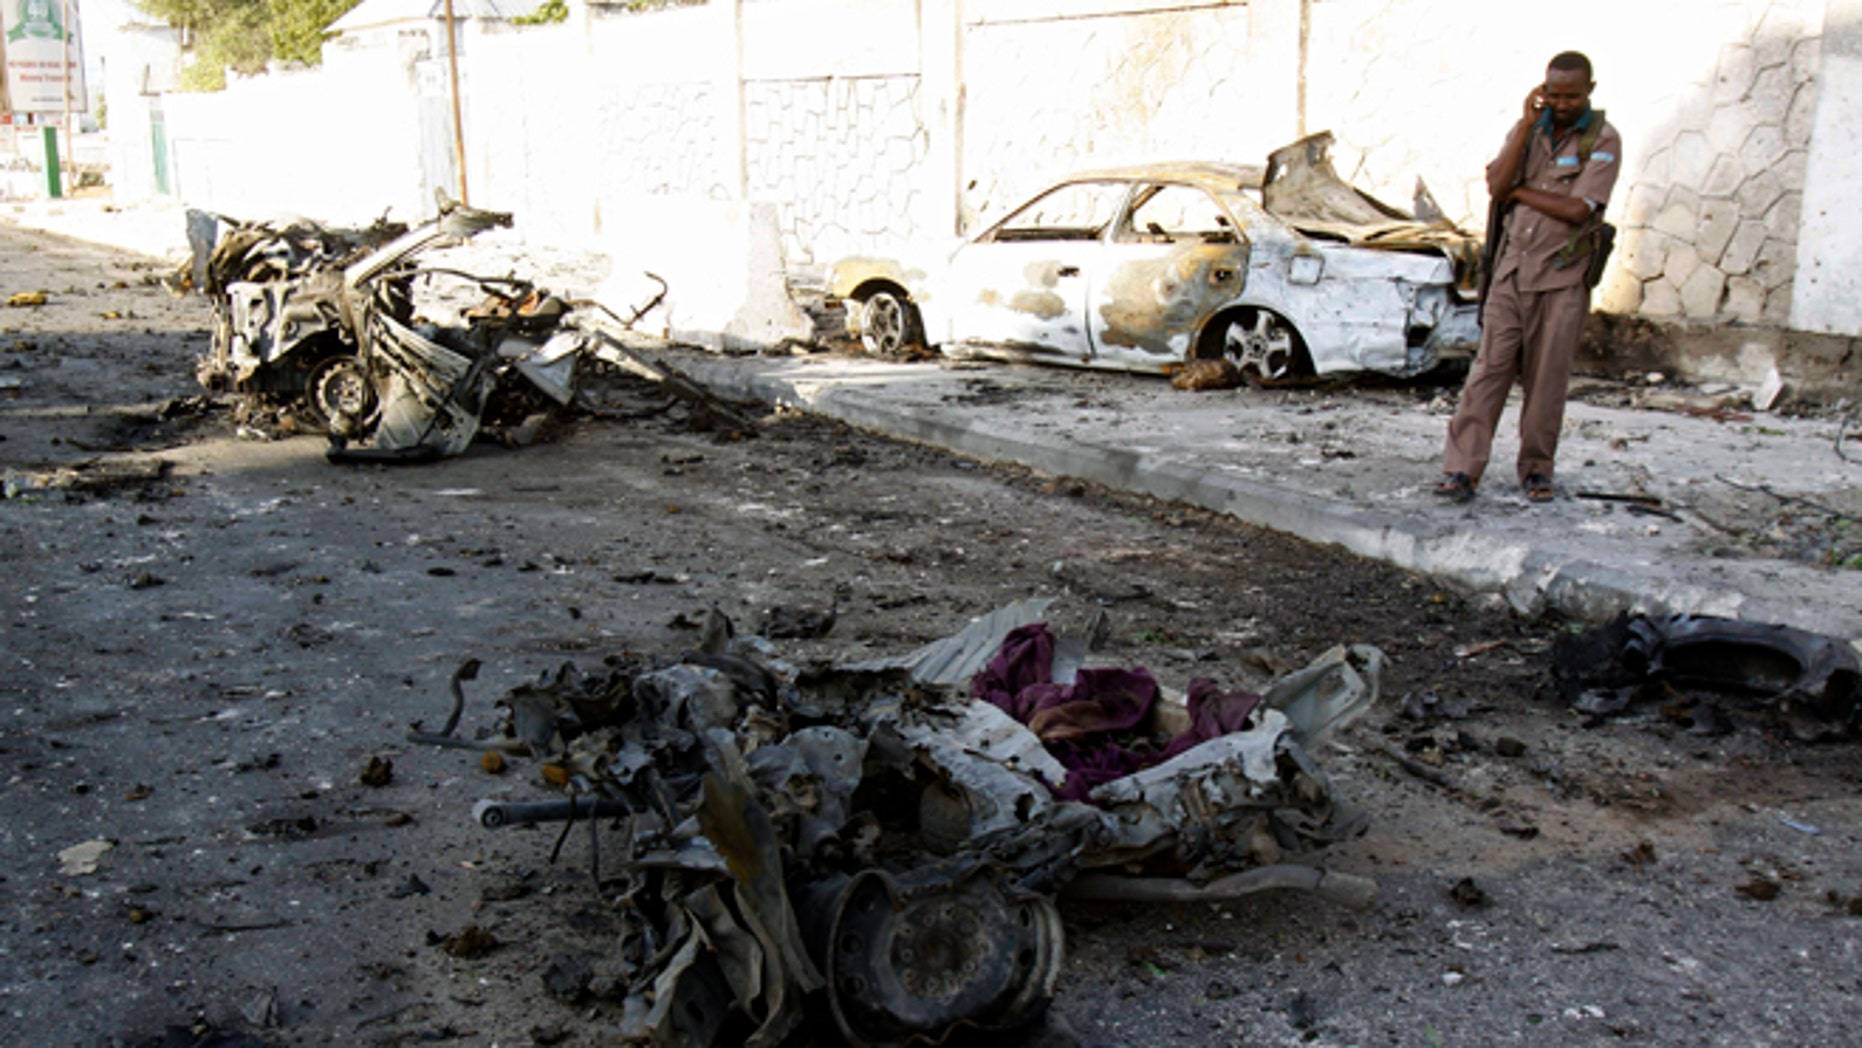 Jan 2, 2013: A Somali soldier stands near the wreckage of cars, after bombs went off at the gate of a hotel in Mogadishu, Somalia.